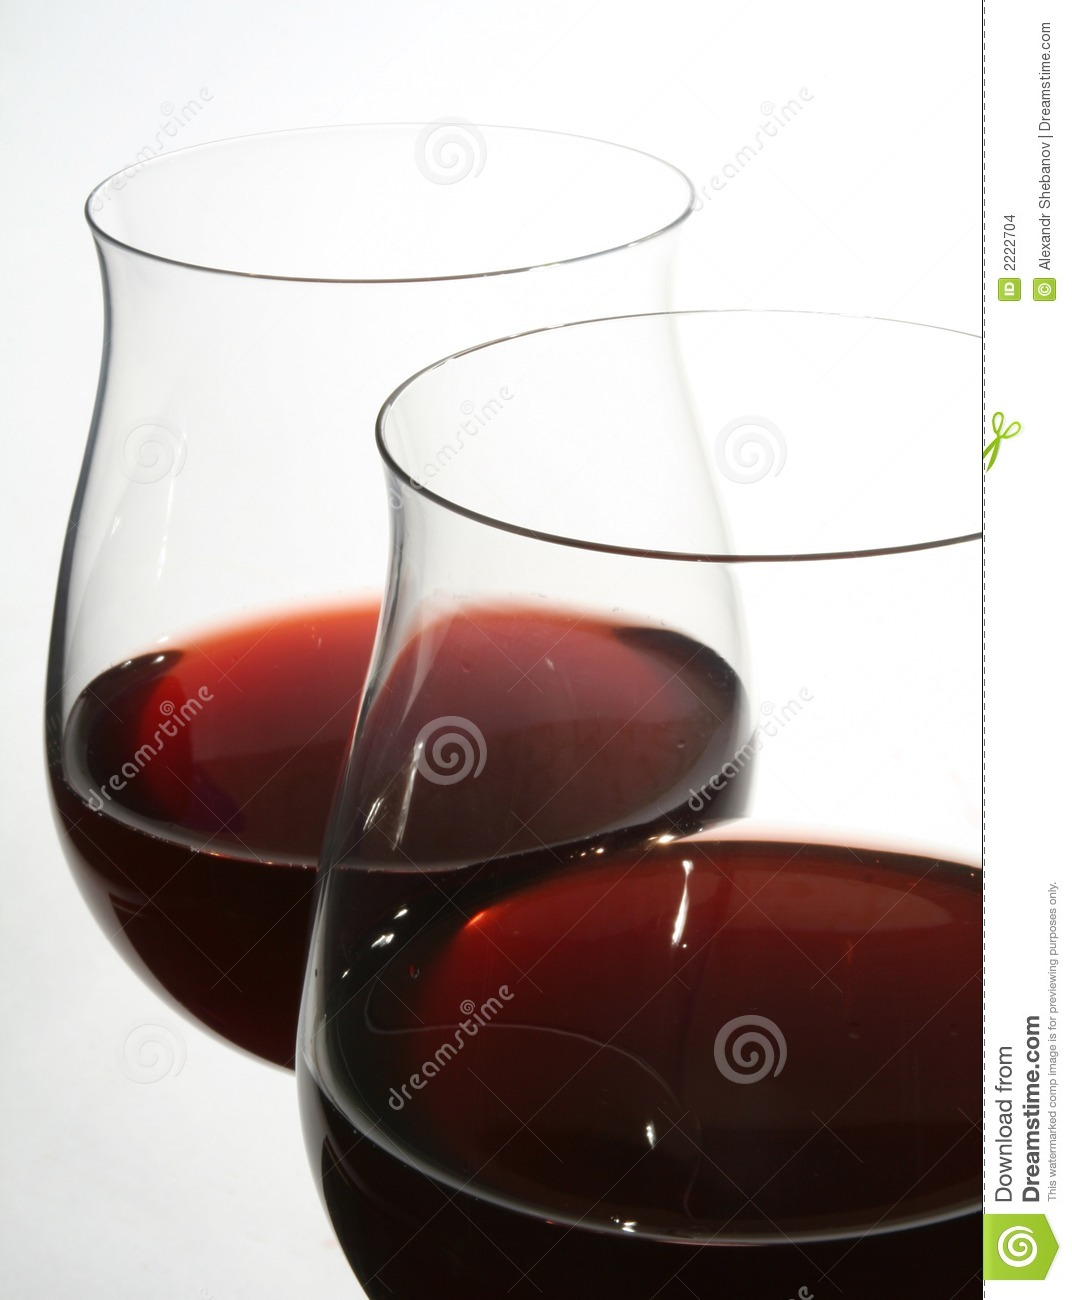 Two wine glasses with red wine